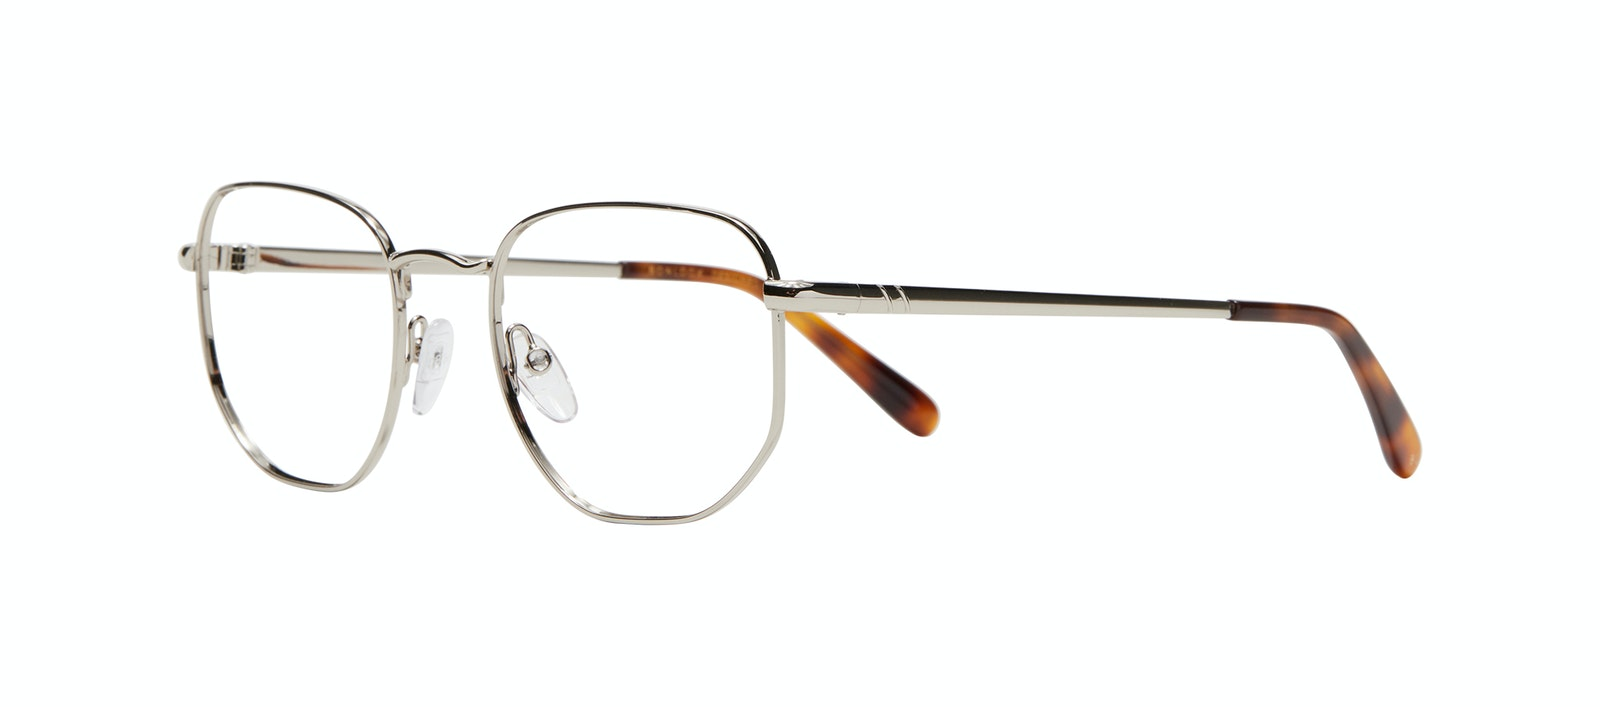 Affordable Fashion Glasses Square Eyeglasses Men Global M Silver Tilt